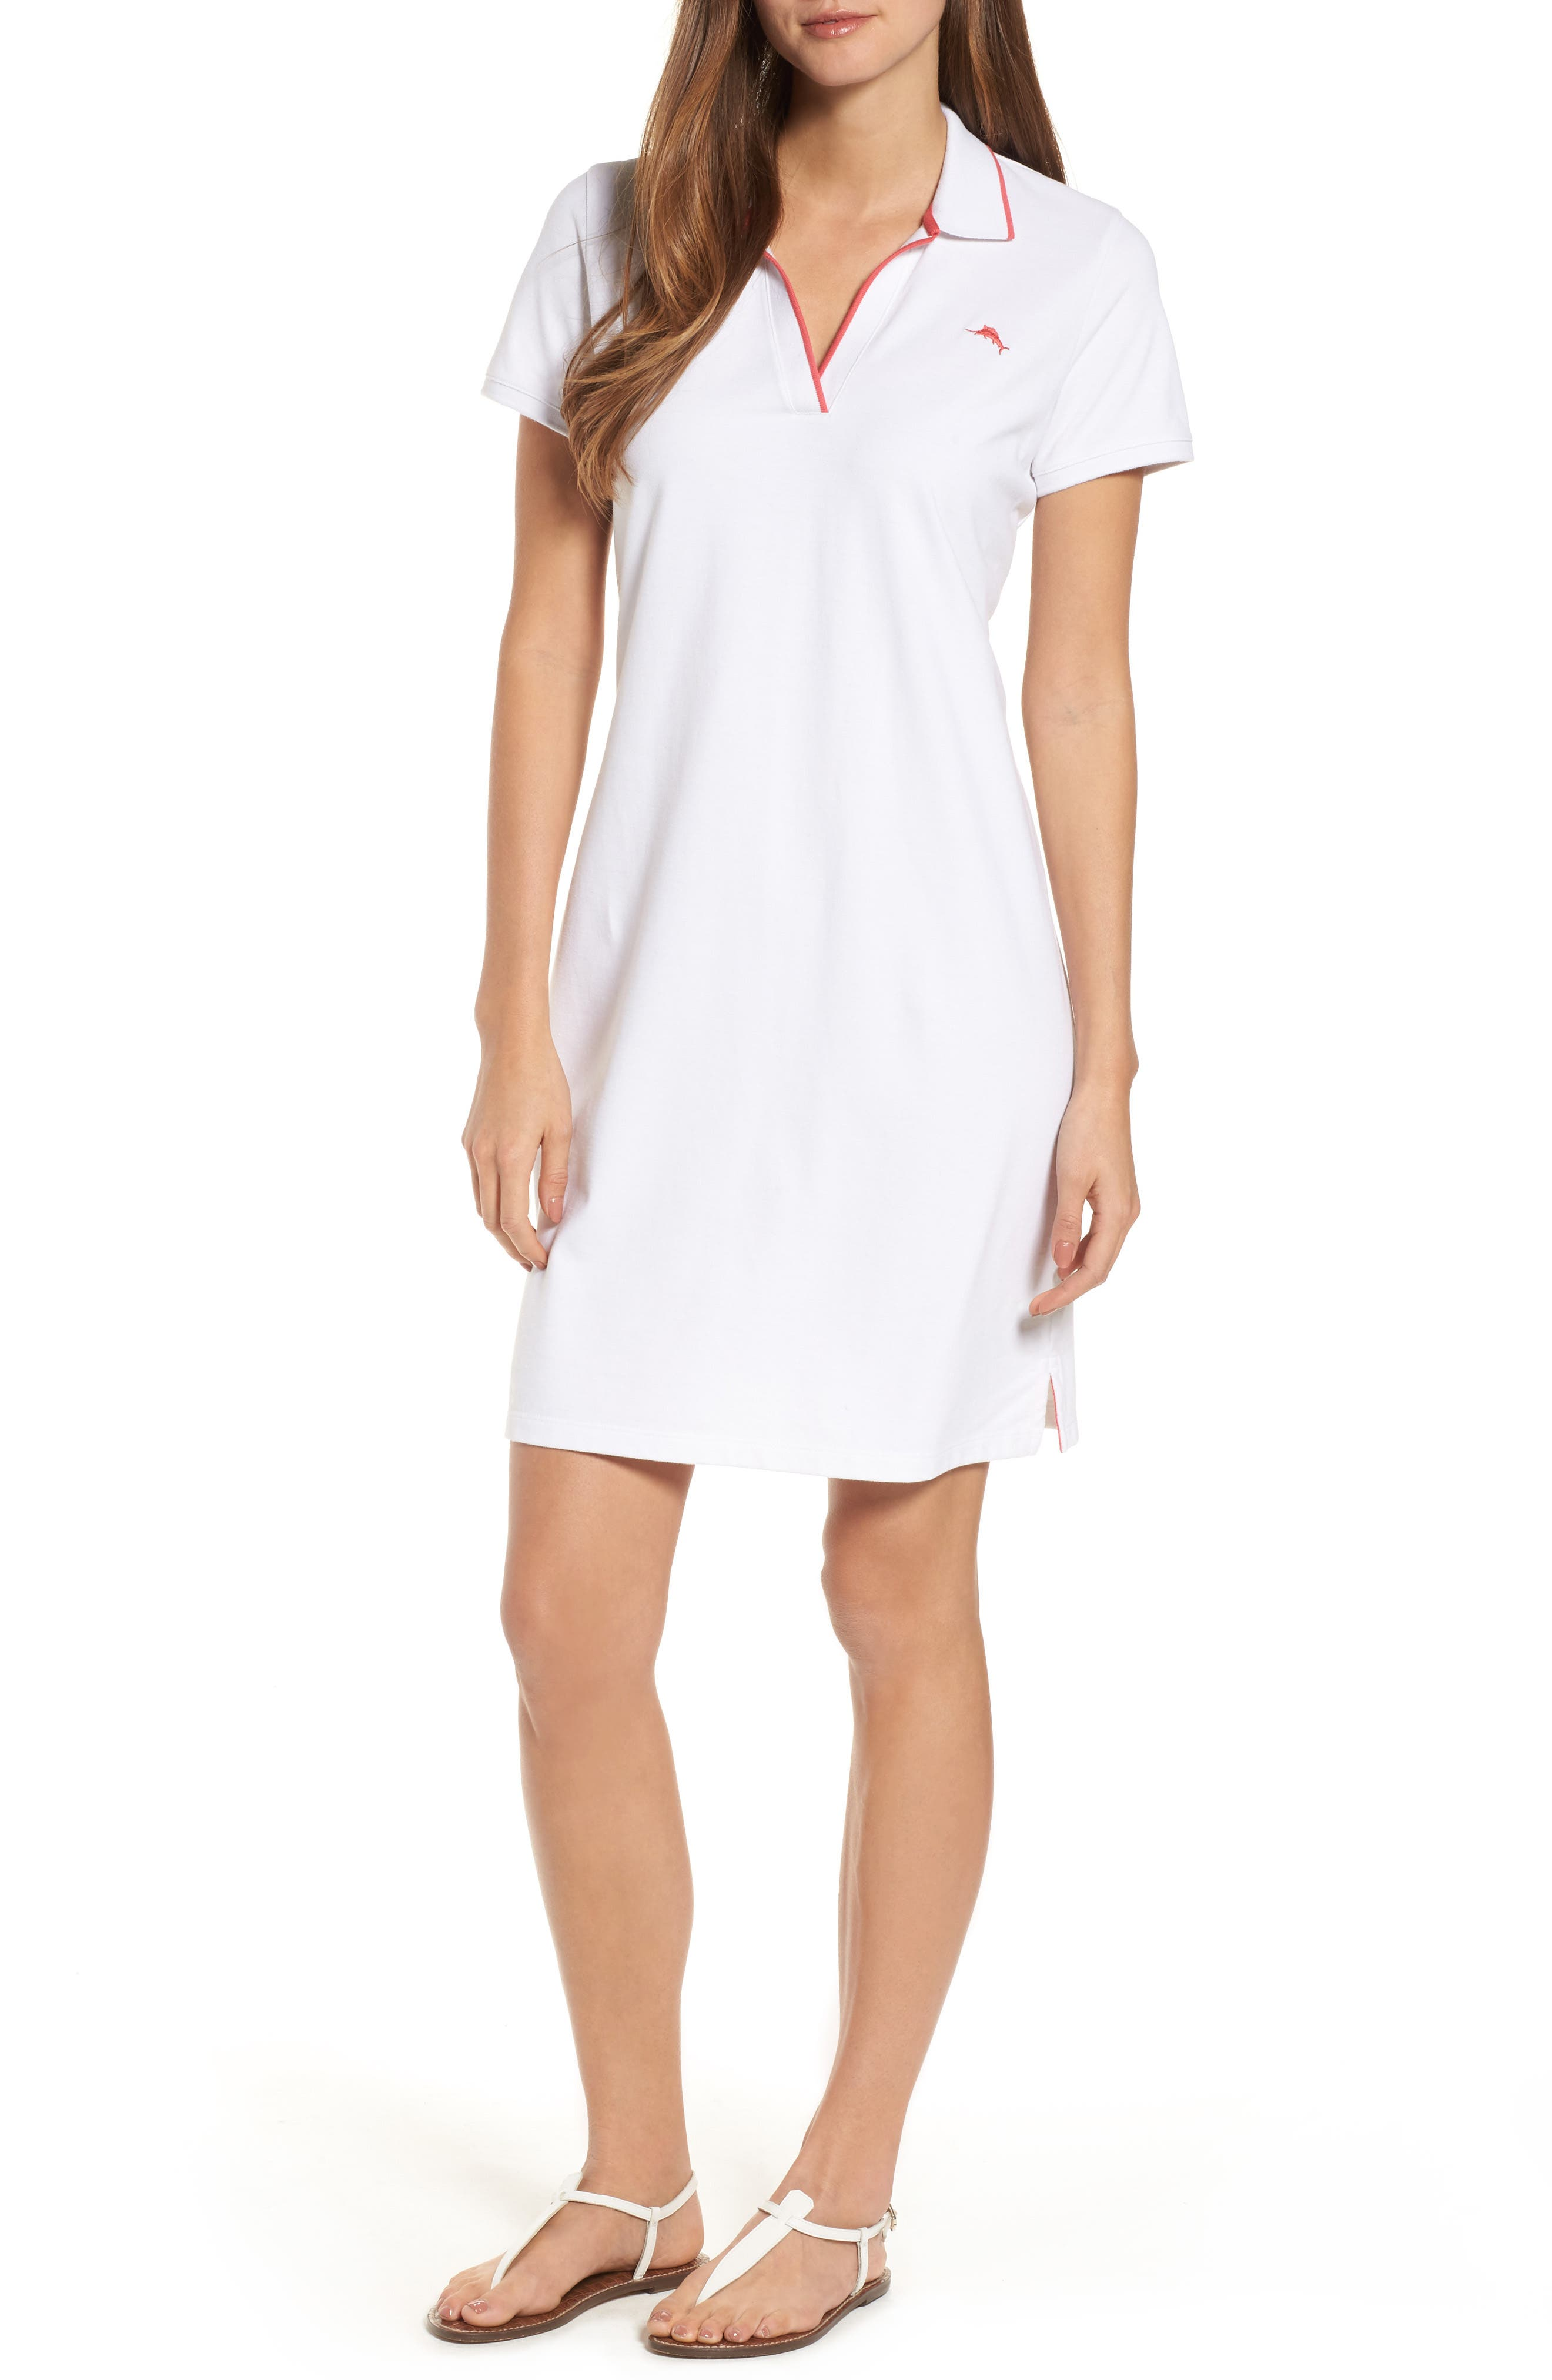 Tropicool Tipped Polo Dress,                         Main,                         color, White/ Cherry Pink